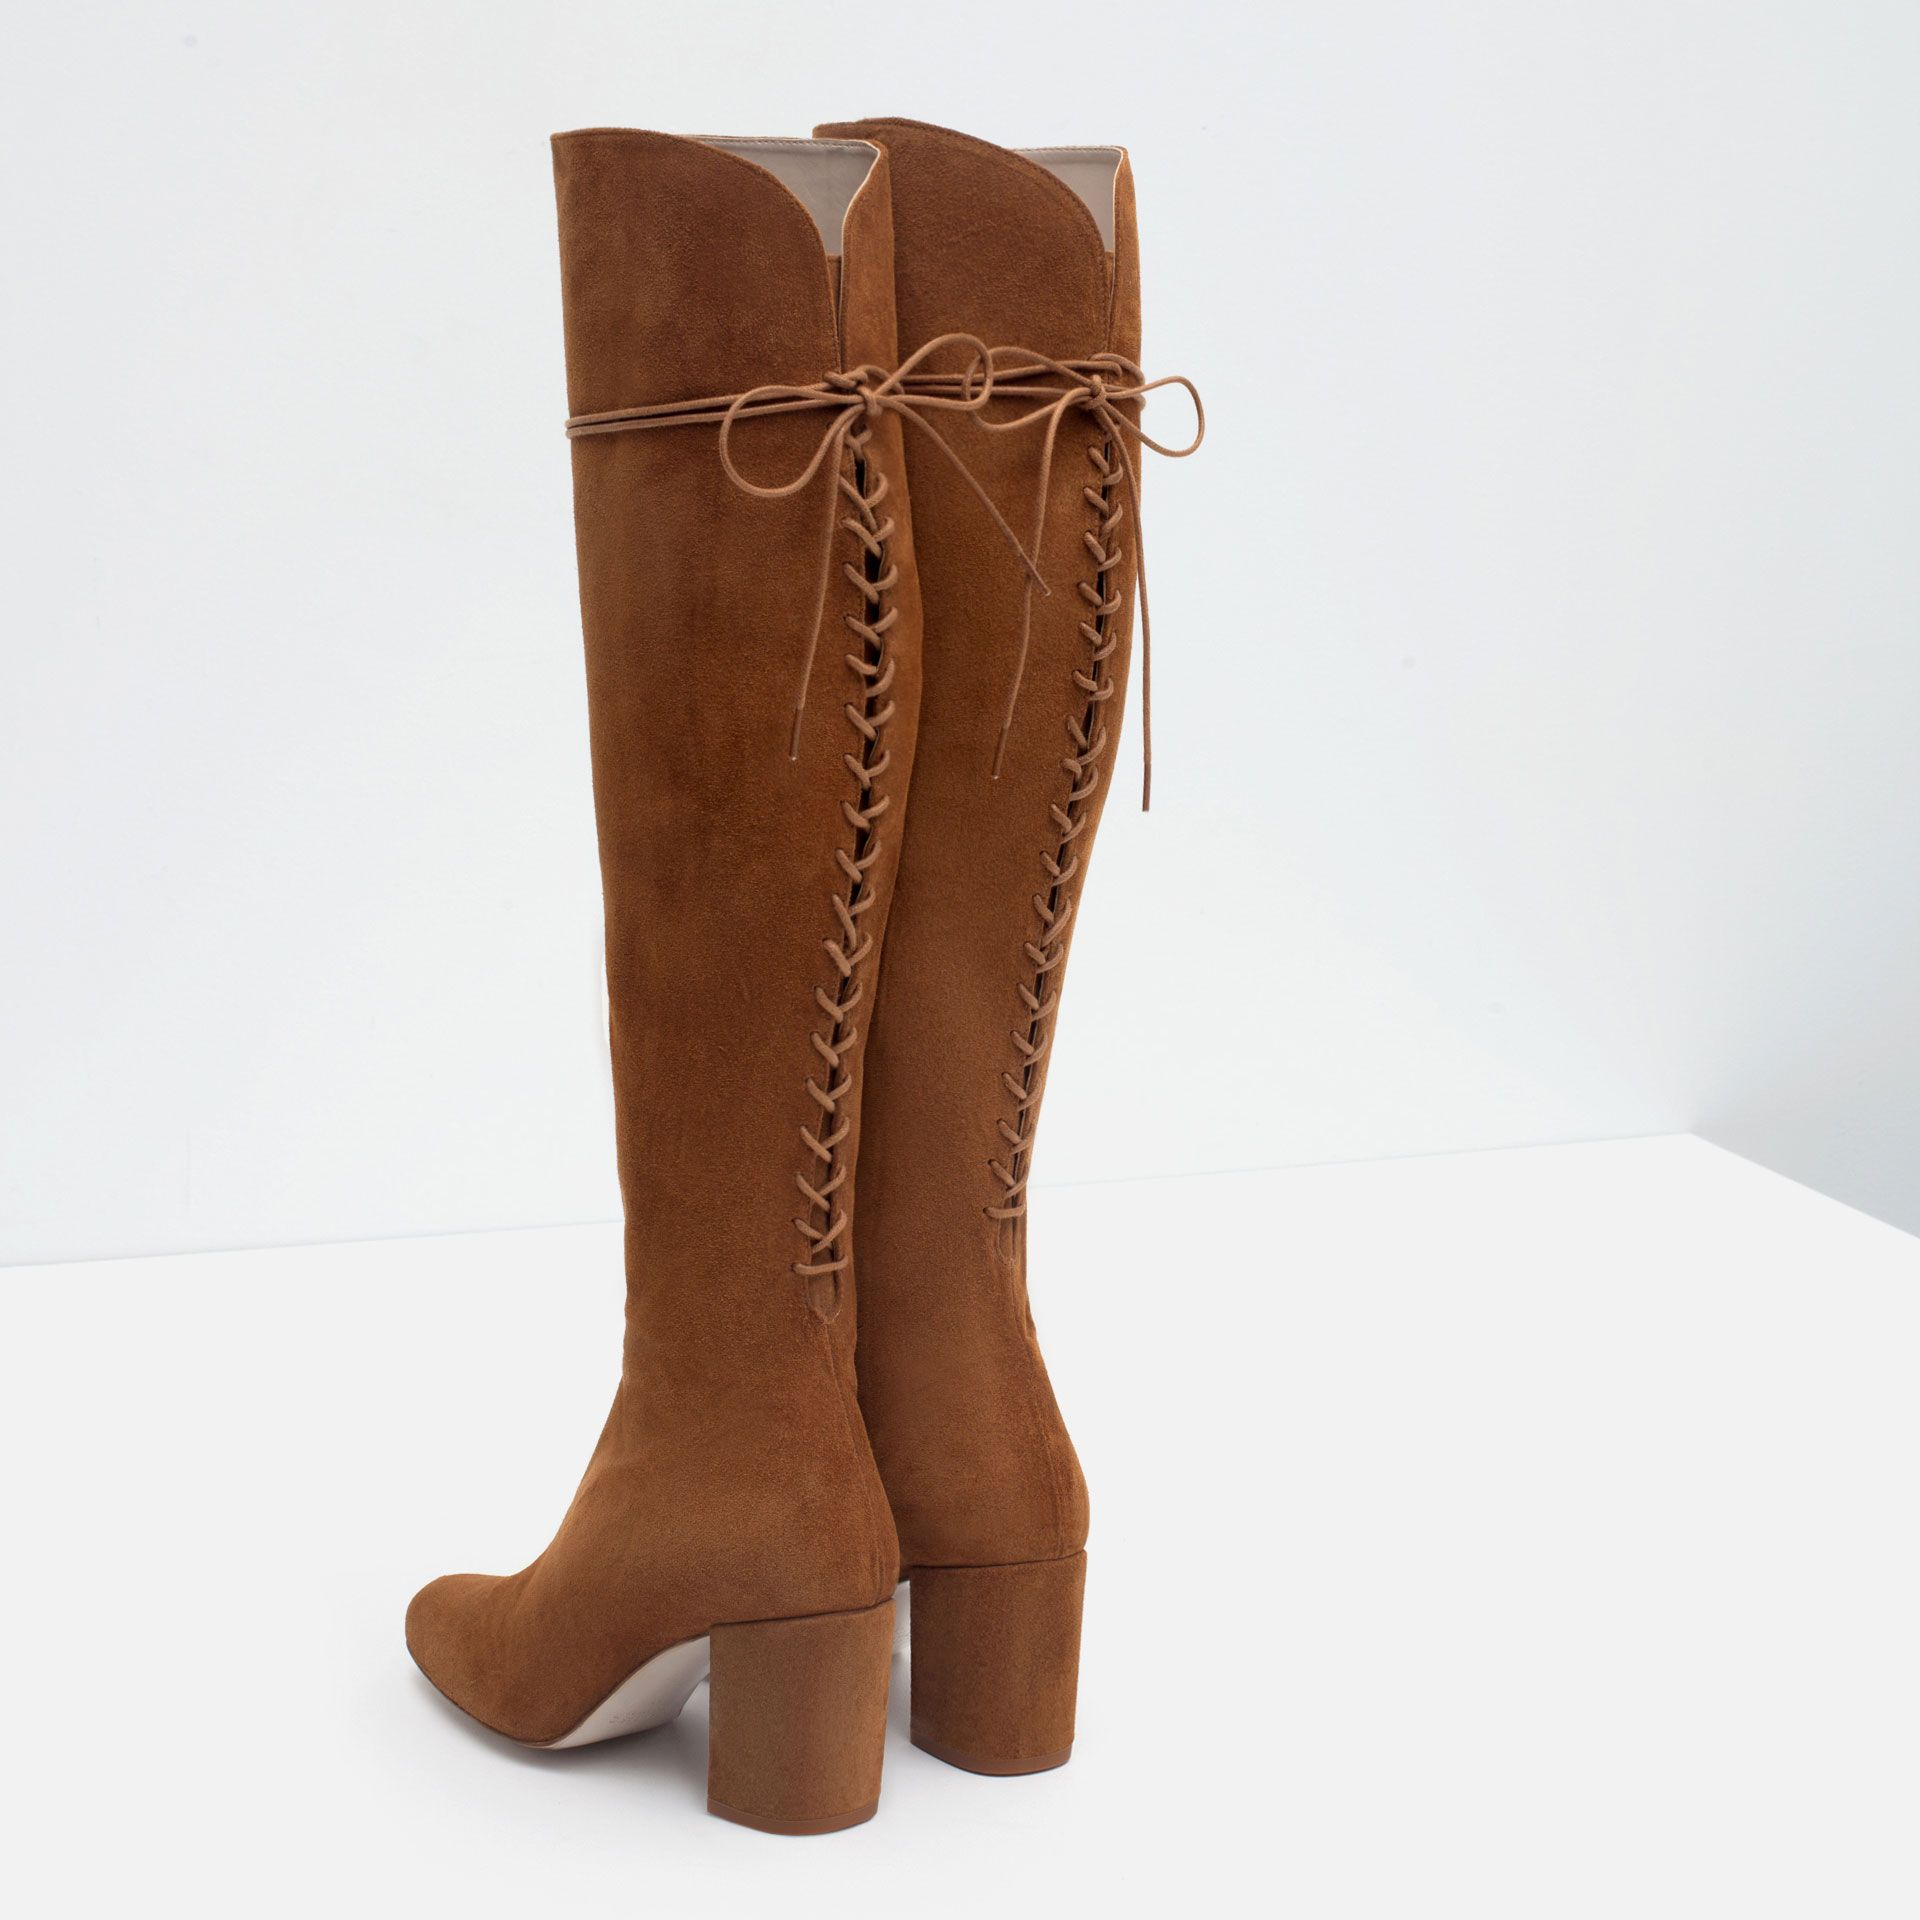 High Heel Leather Boots With Laces View All Shoes Woman Leather Boots Heels Boots Leather High Heel Boots